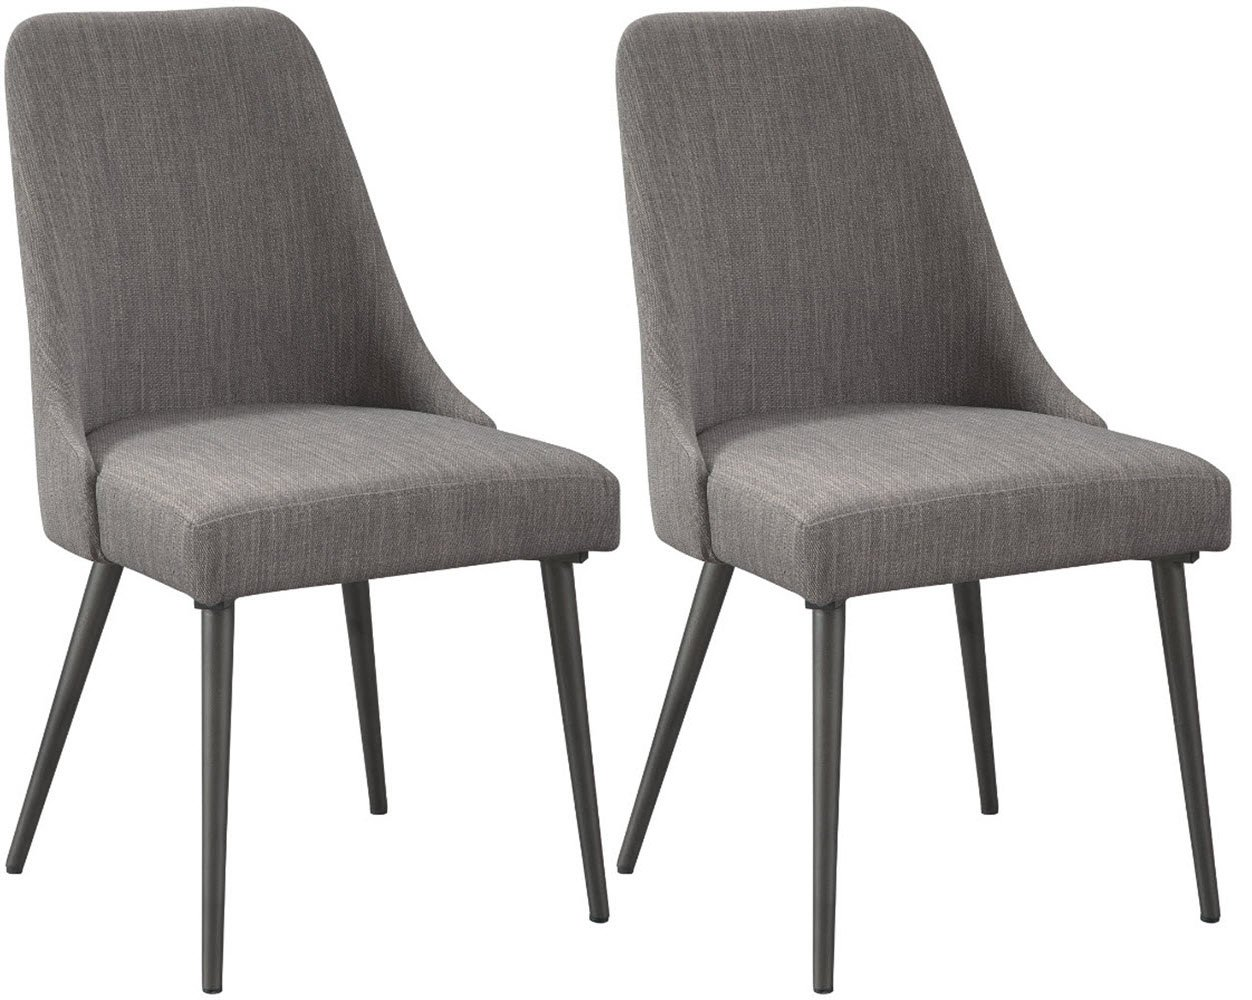 Signature Design by Ashley D605-01 Dining Chair, Coverty - UPHOLSTERED DINING ROOM CHAIRS: Rewind time-without sacrificing style. These chairs' textural gray fabric bring comfort to dinner in a minimalist, trendy design HANDSOMELY CRAFTED: Foam cushioned seat is upholstered in polyester and made with a metal frame in a dark gray powder coated finish MID CENTURY MODERN CHIC: Designed with a contoured wraparound form and canted legs, it's sure to tie your bistro or cafe seating together with cool, mid-century modern flair - kitchen-dining-room-furniture, kitchen-dining-room, kitchen-dining-room-chairs - 71AgdVfOqFL -